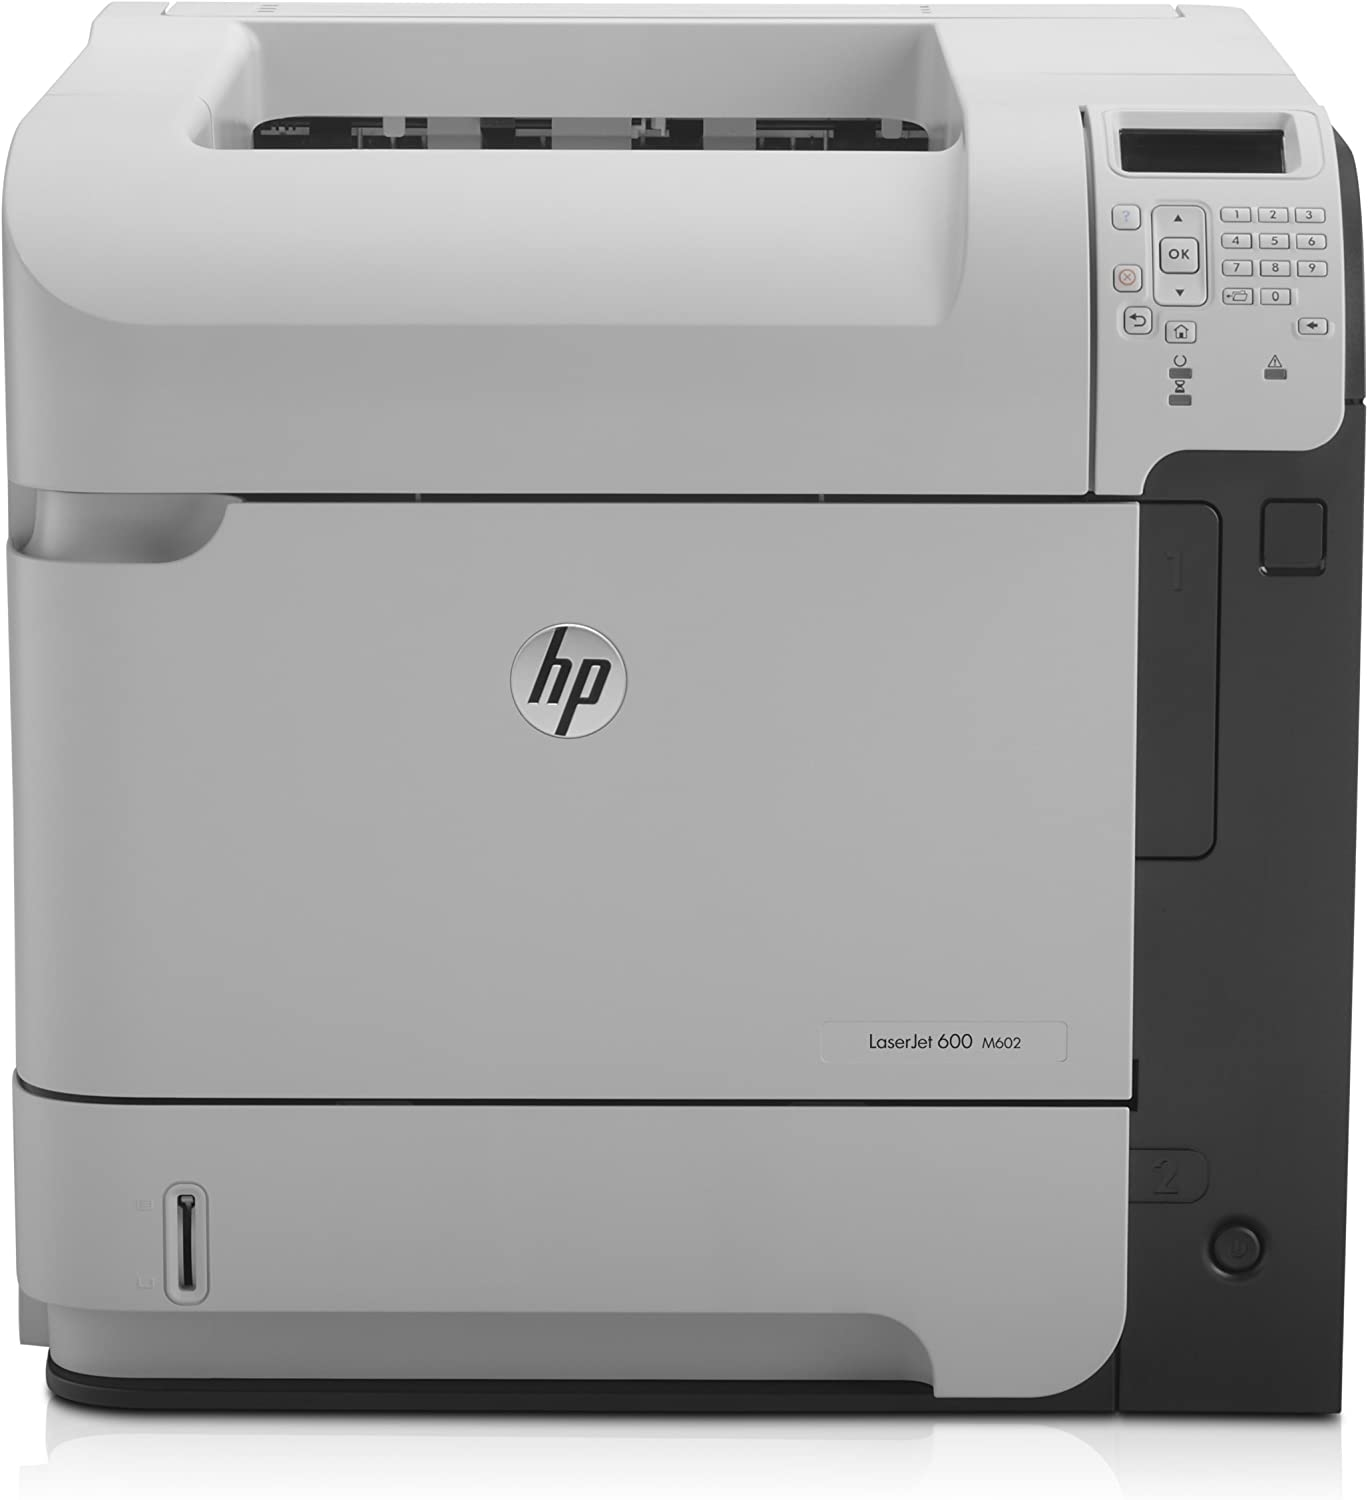 HP LaserJet Enterprise M602n - printer - B/W - laser (CE991A#BGJ) -